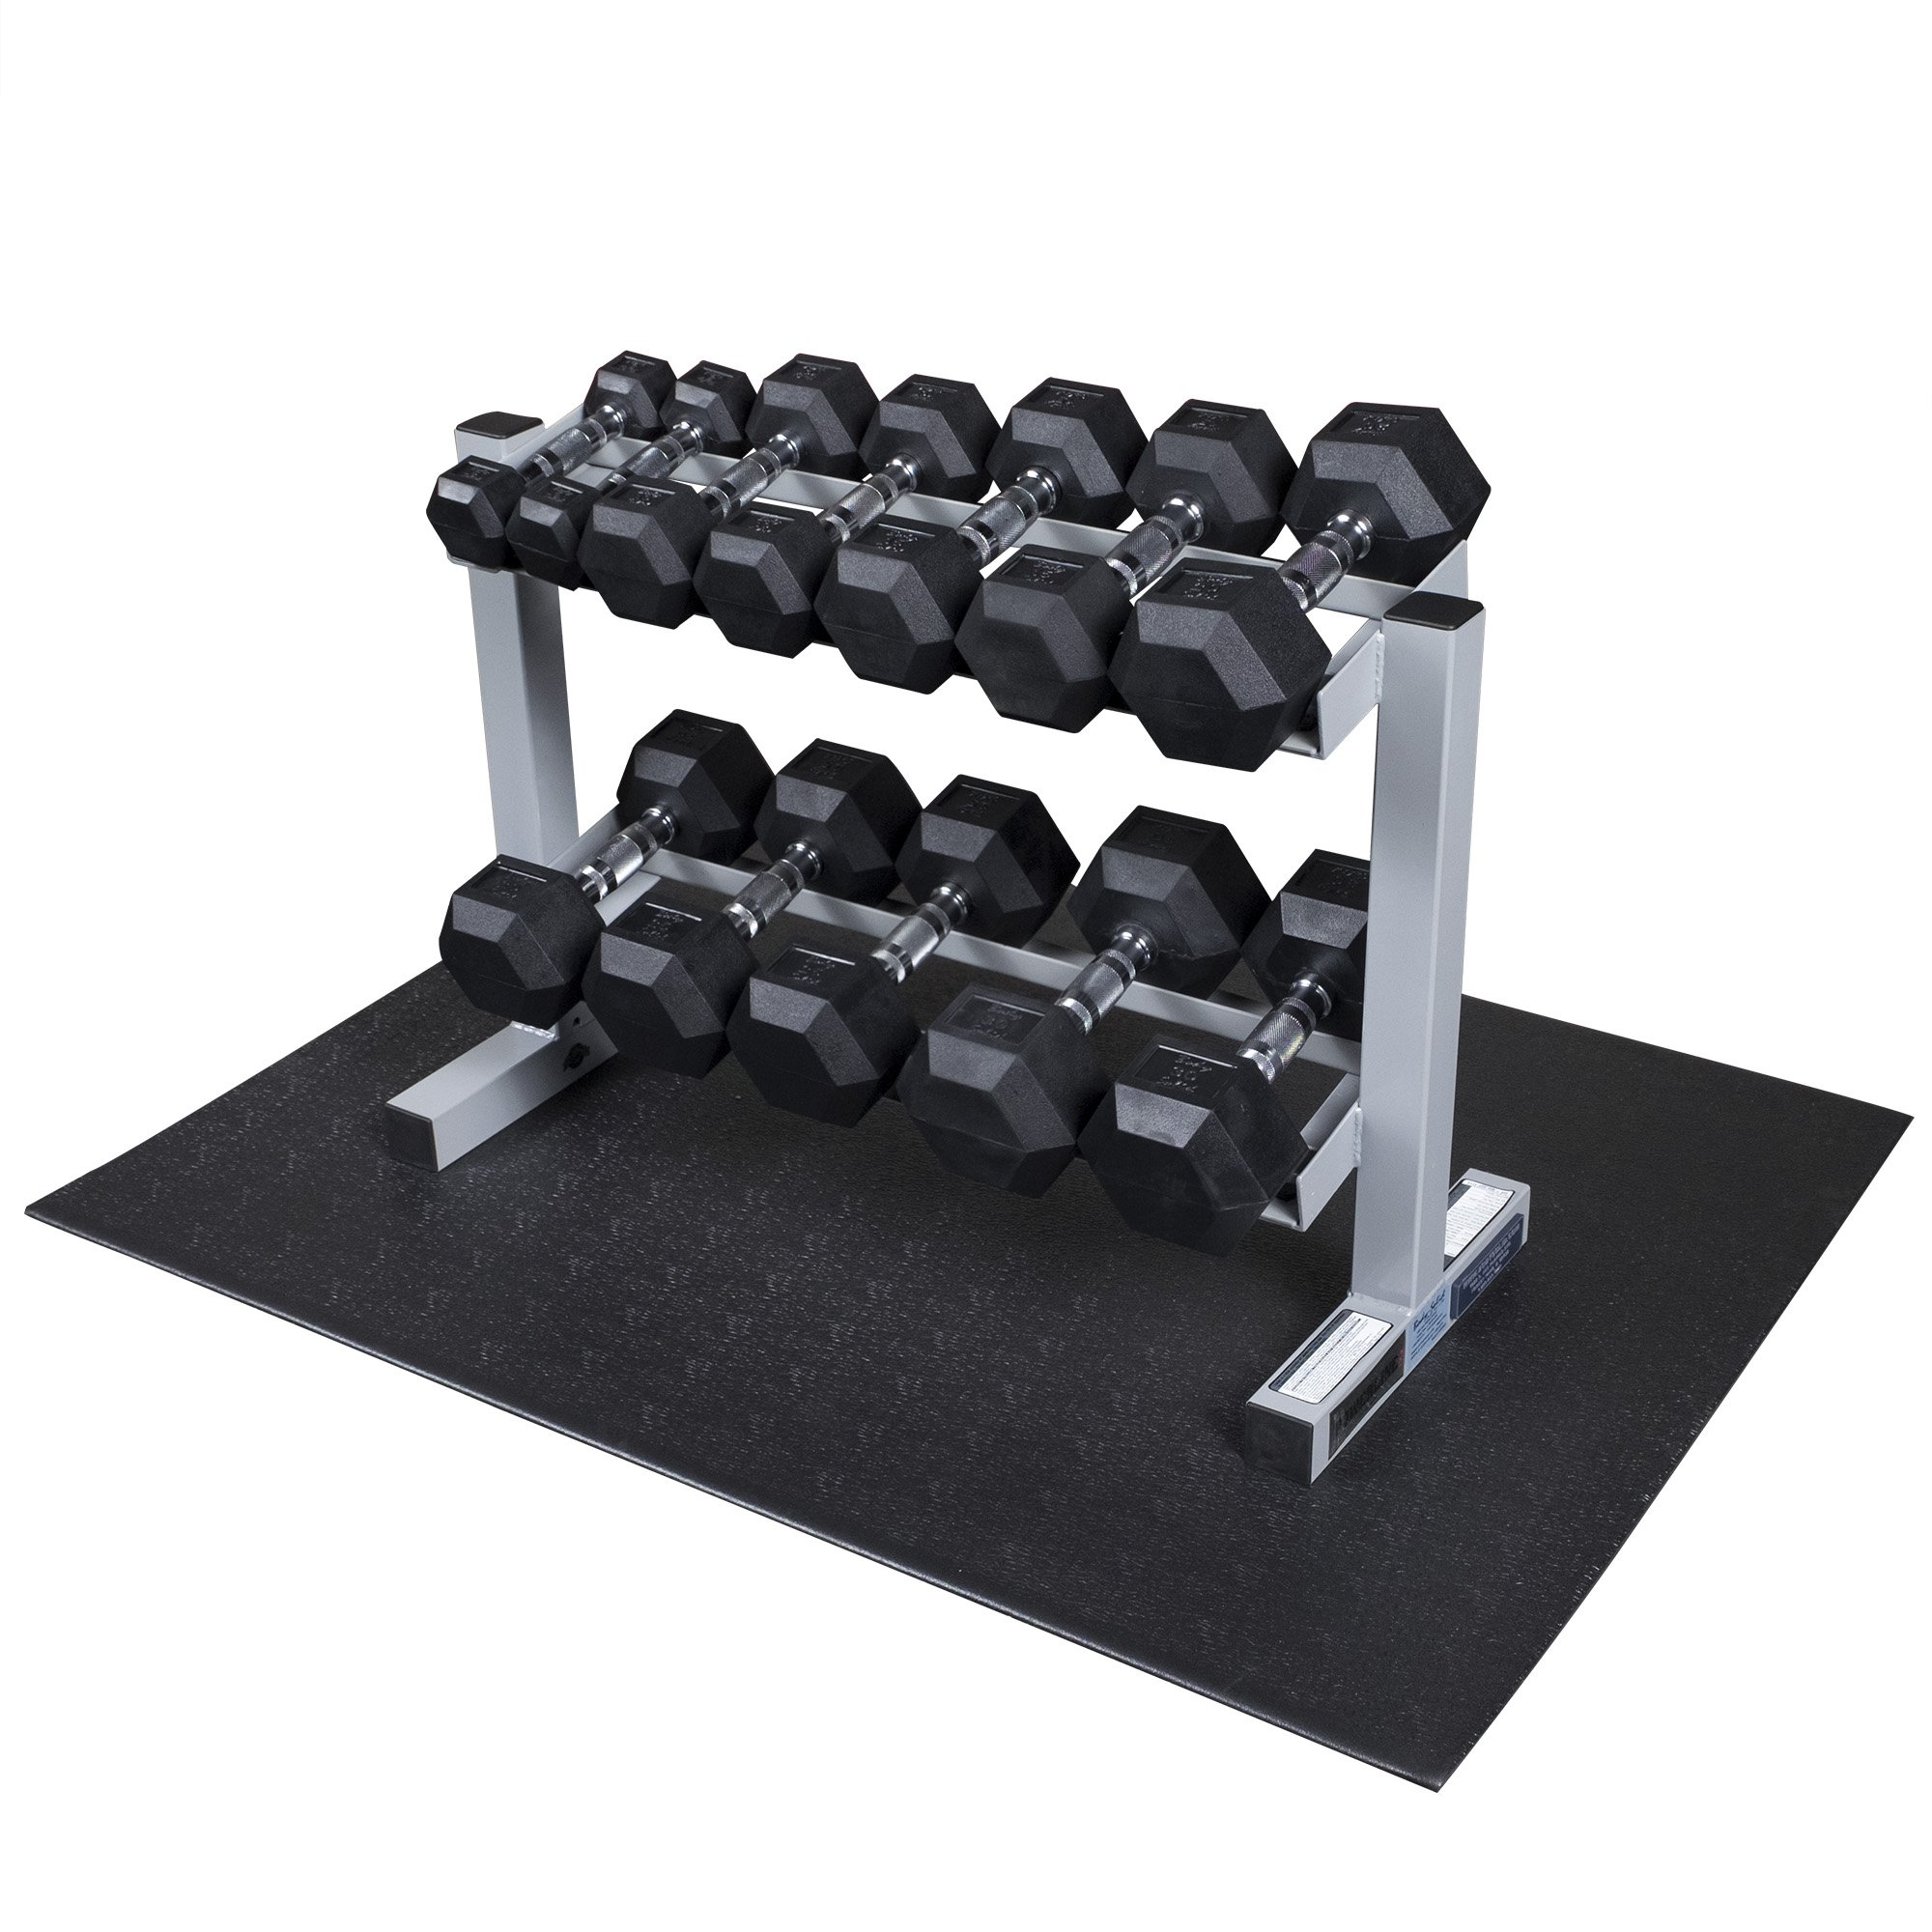 Powerline PDR282X-RFWS Dumbbell Rack with Rubber Dumbbells by Powerline